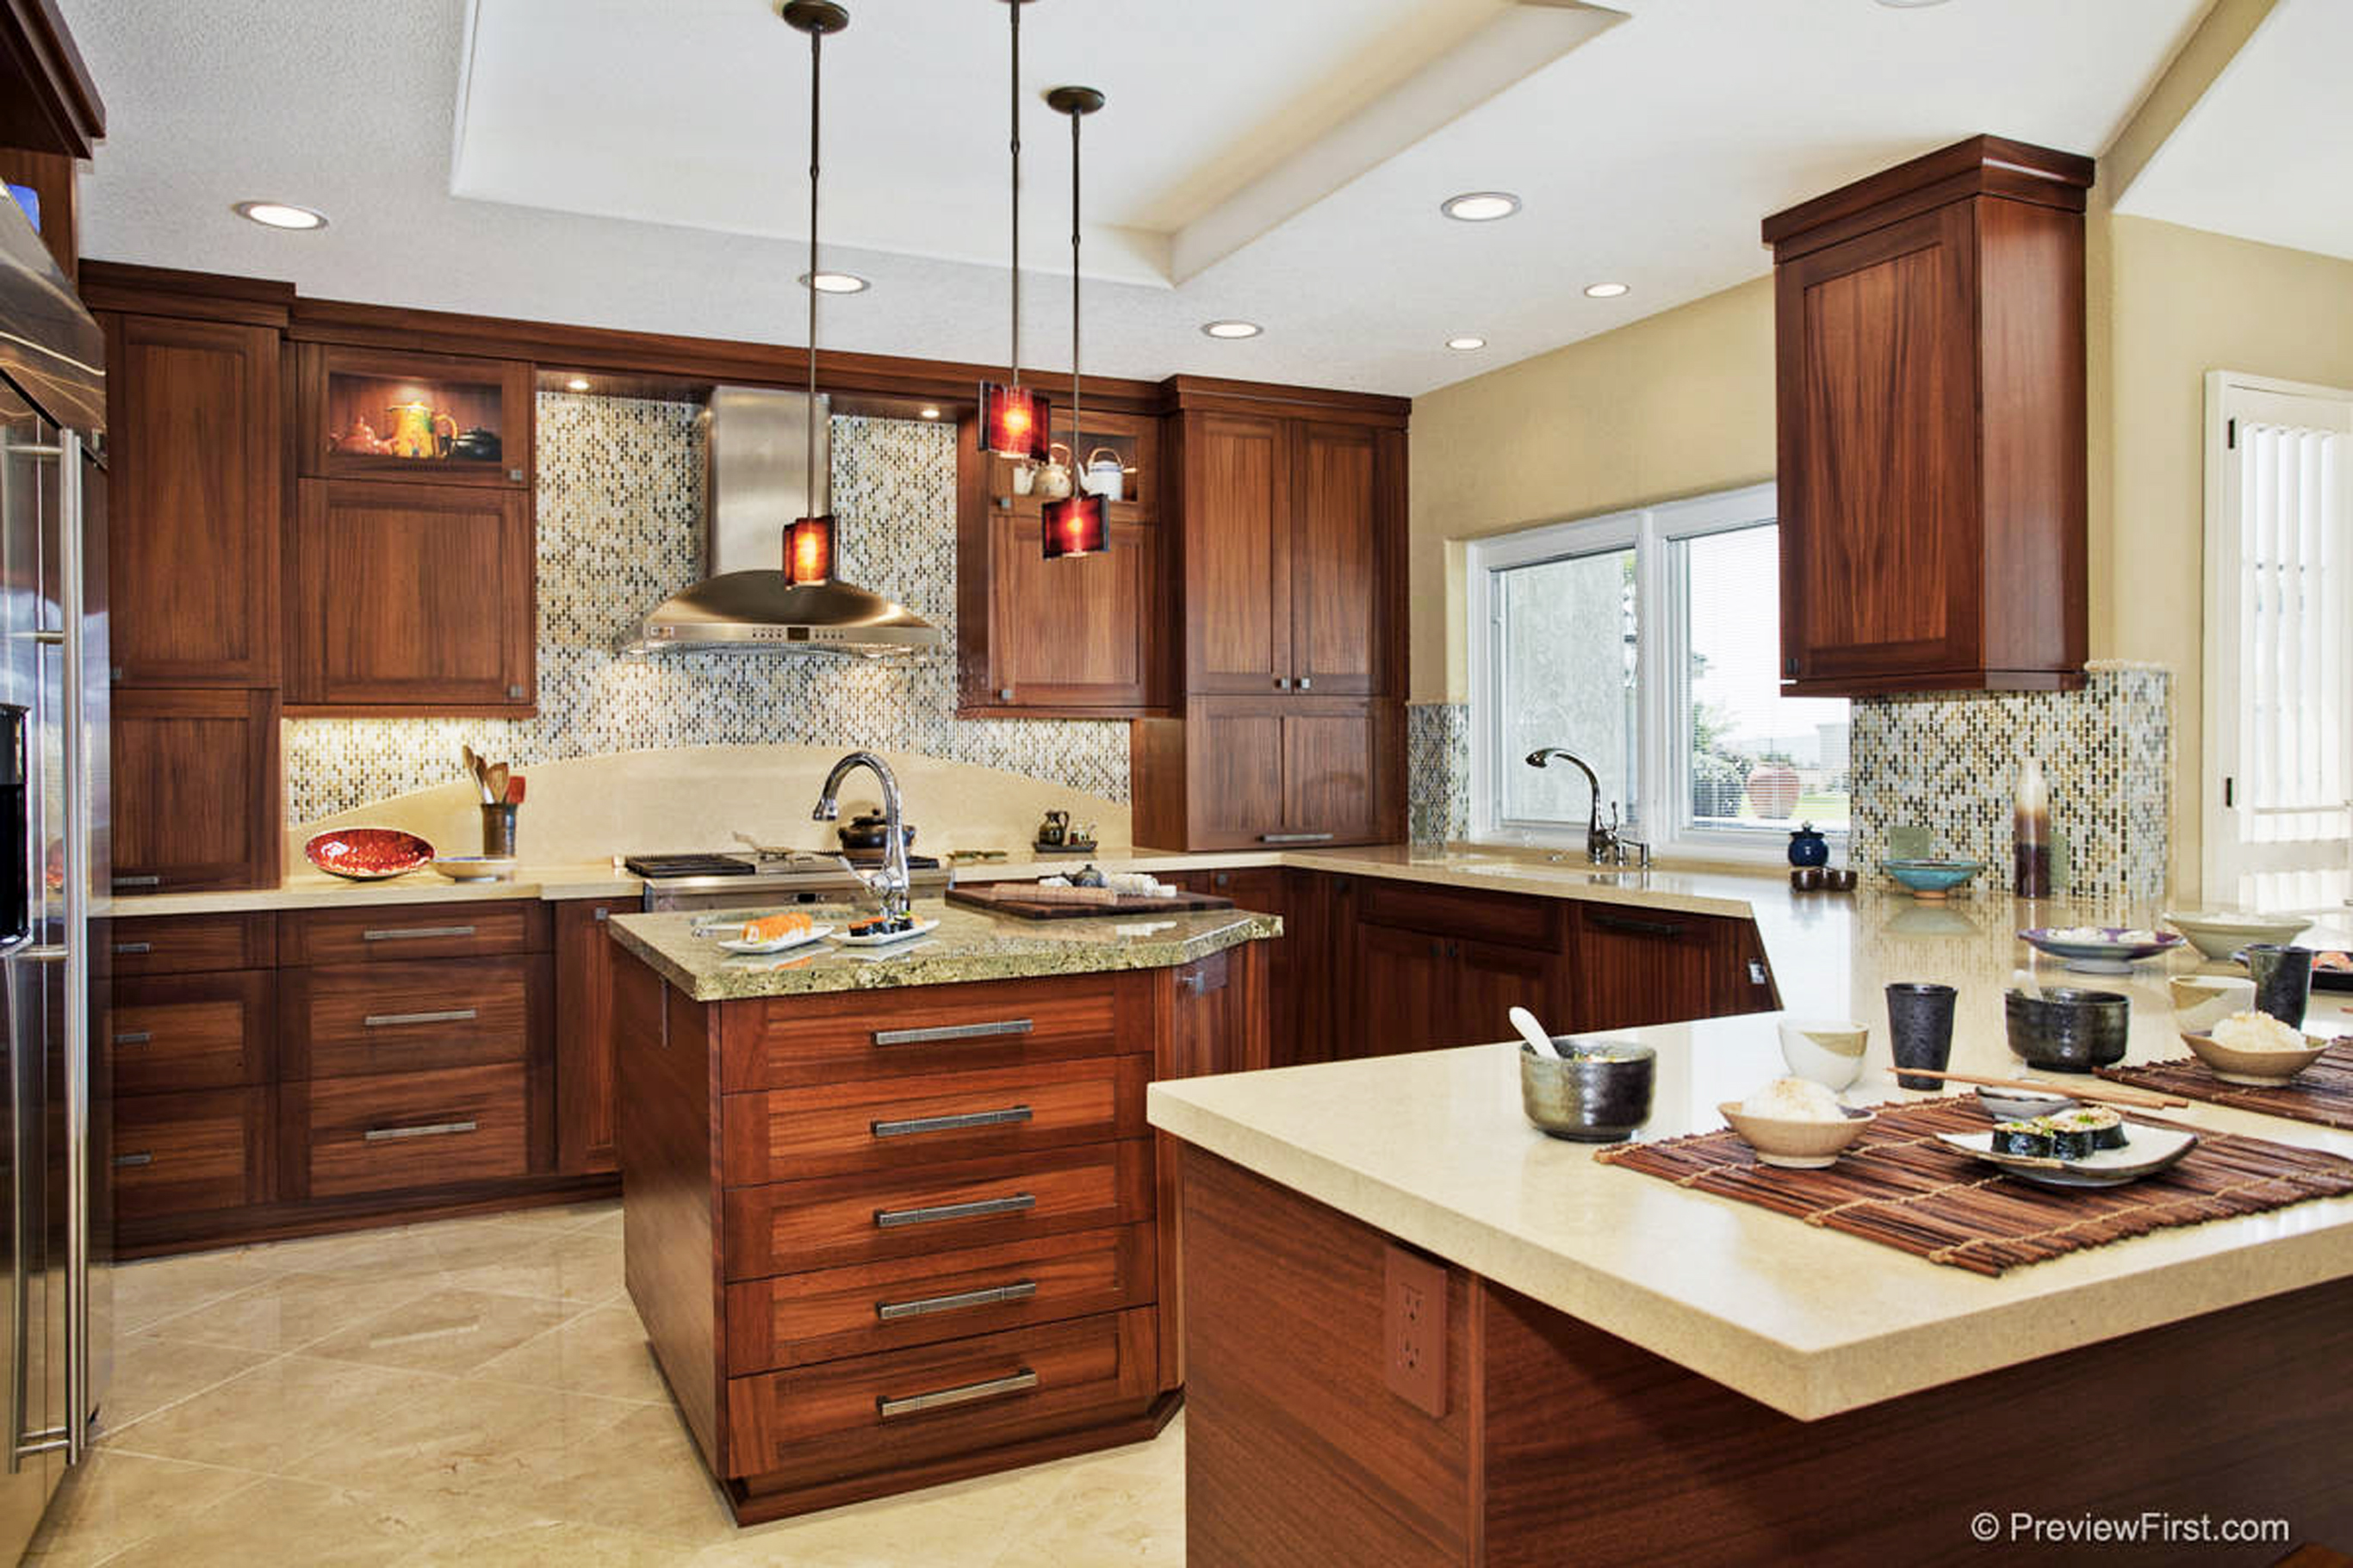 Modern Craftsman Kitchen Cabinets in Mahogany